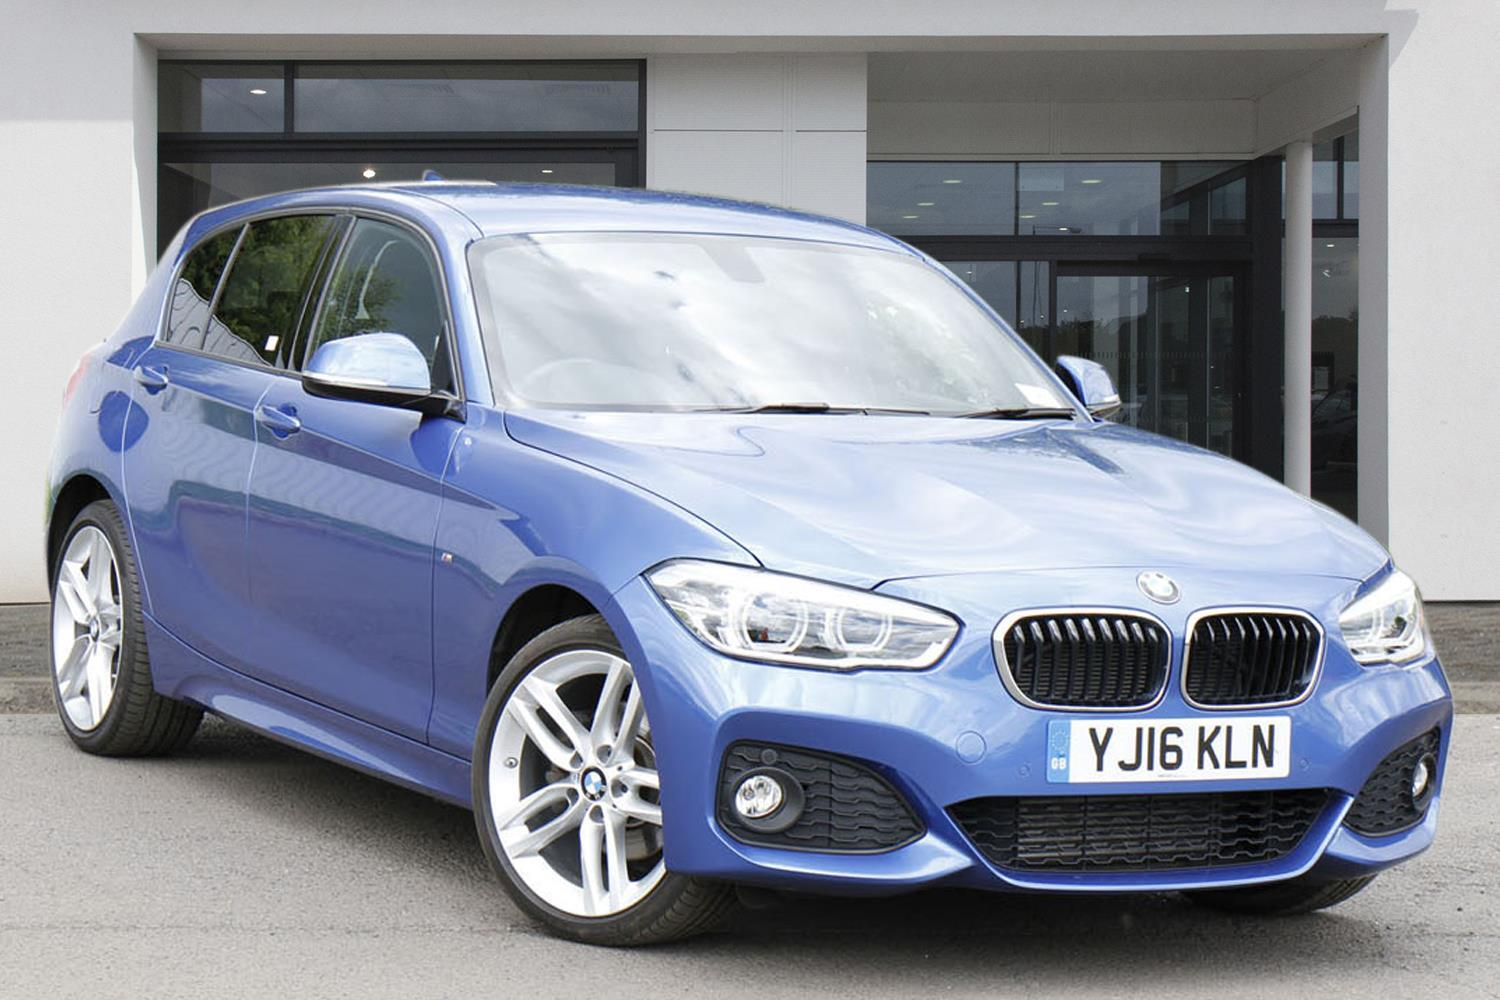 BMW 1 Series 5-door Sports Hatch YJ16KLN - Image 3